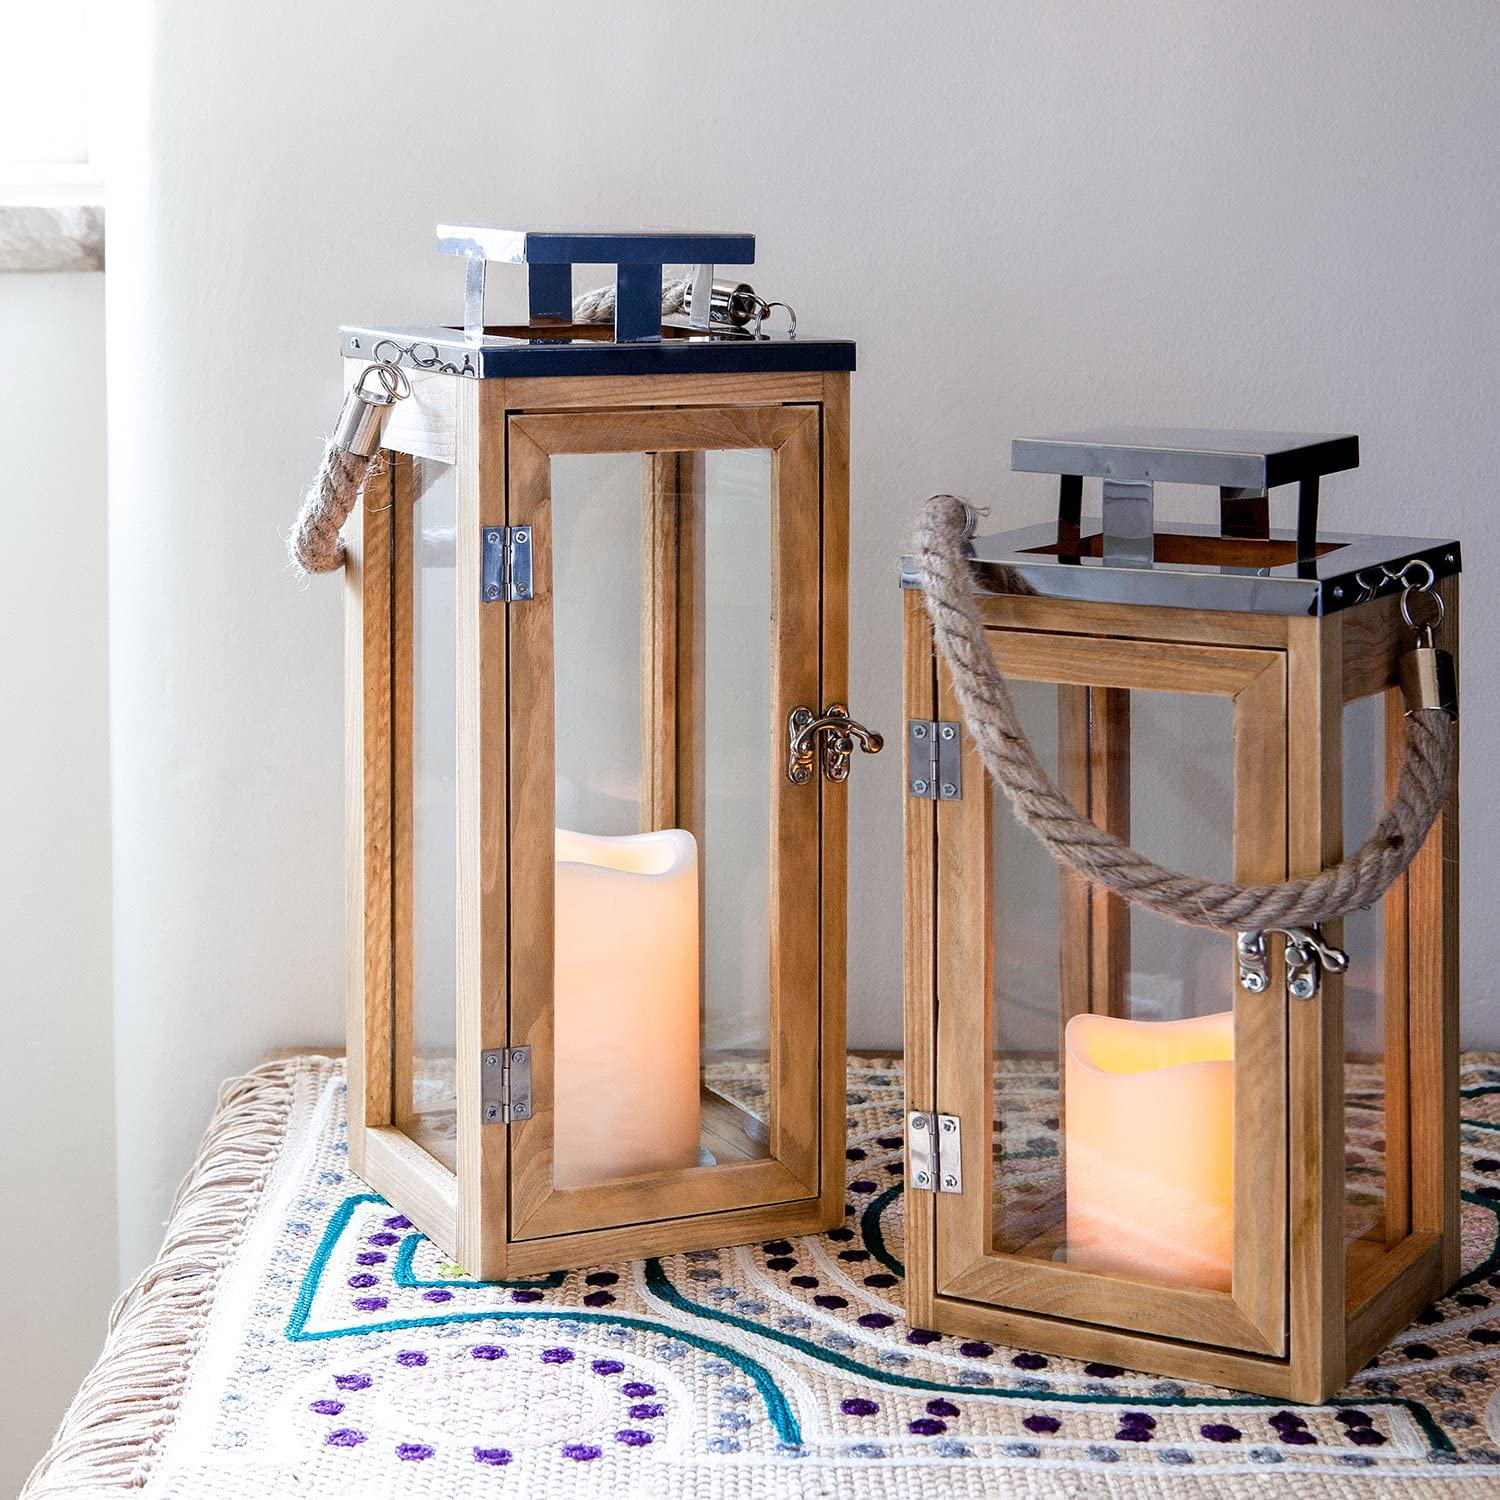 Inc Lights4fun Large Wooden Battery Operated LED Flameless Candle Lantern for Indoor and Outdoor Use